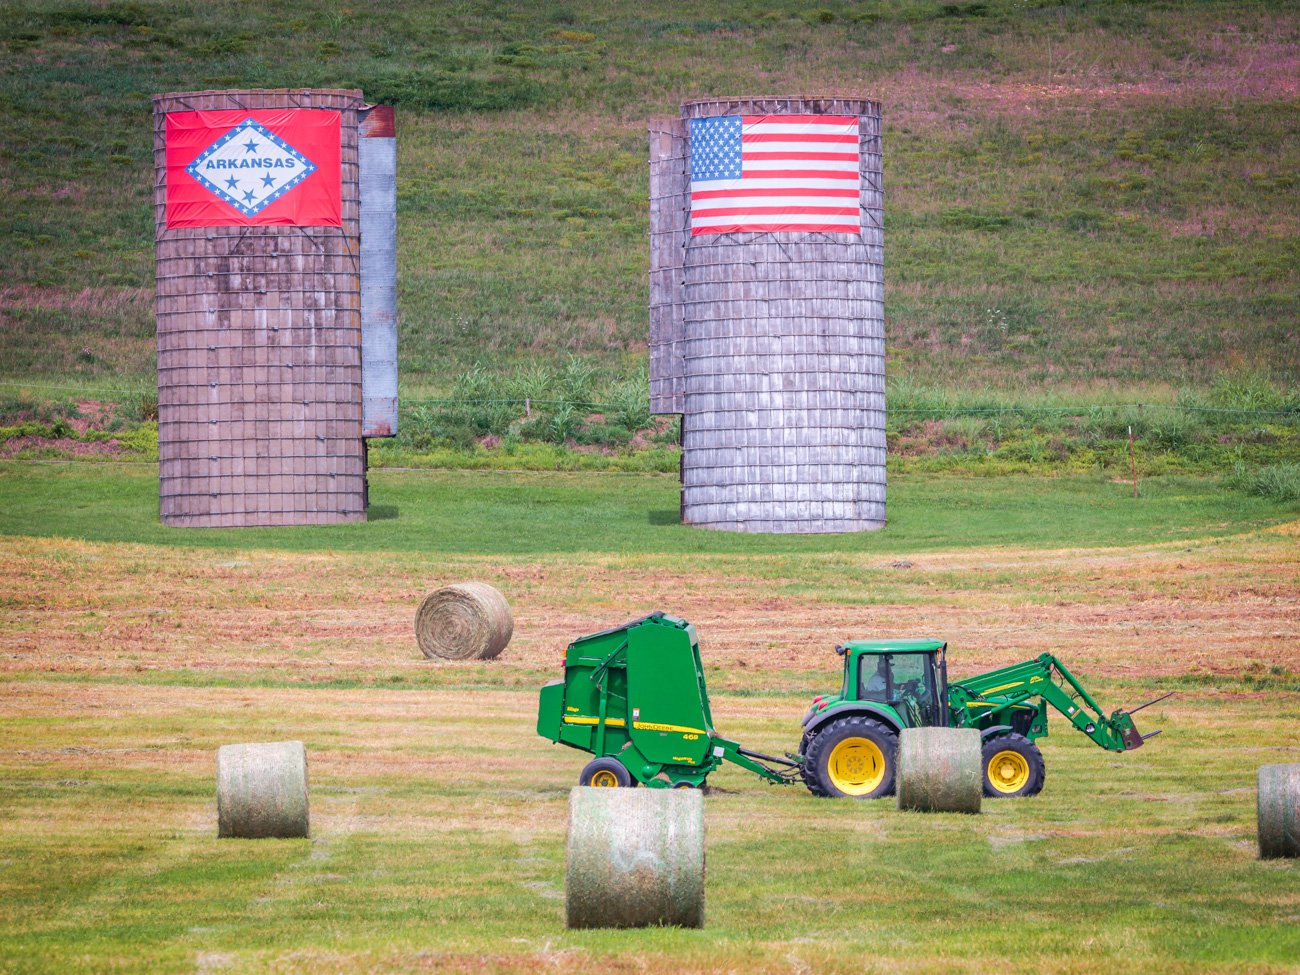 A tractor is bailing hay on a farm near Fayetteville.